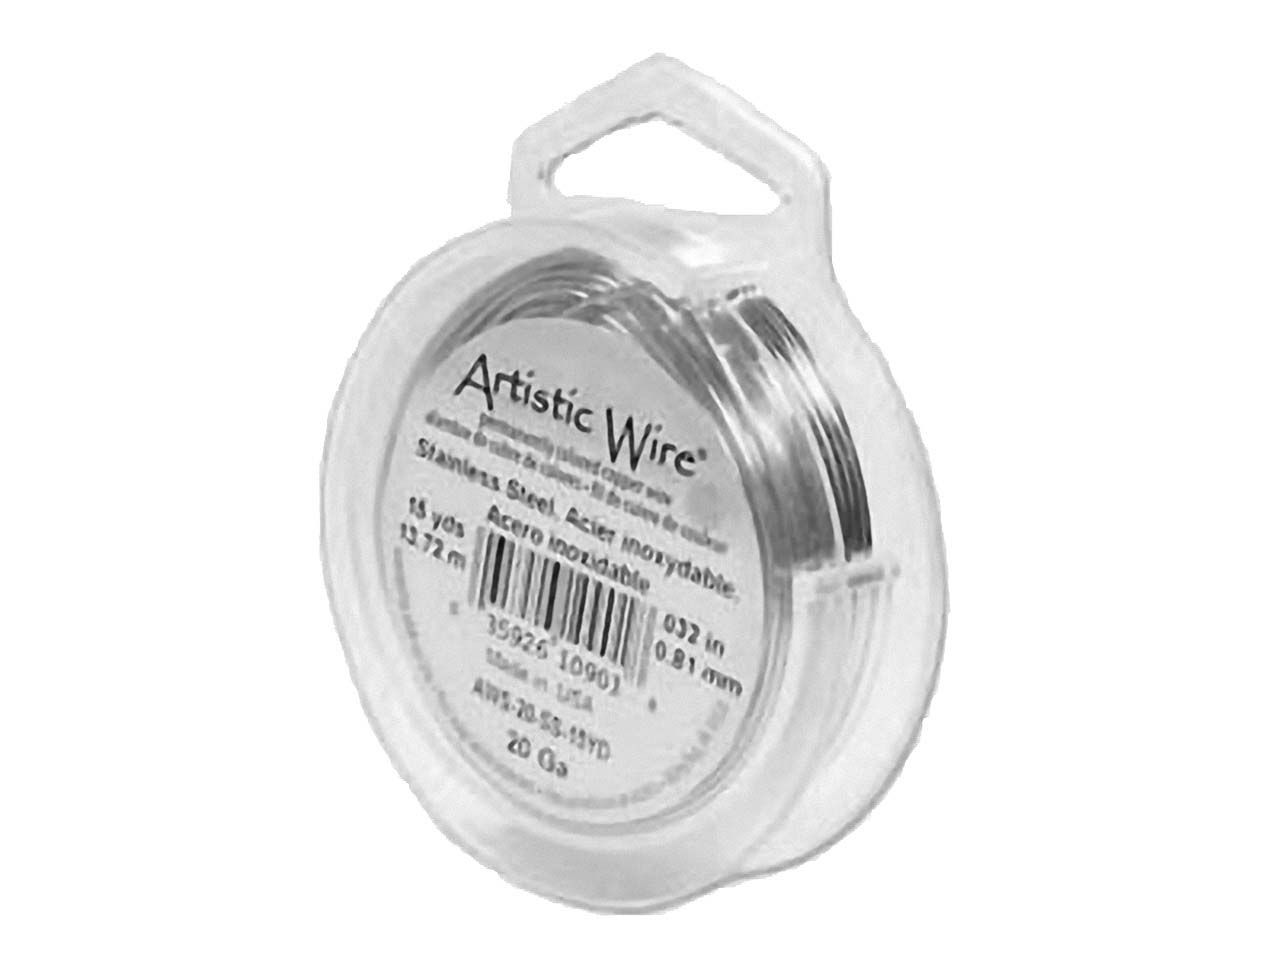 Stainless Steel Craft Wire 0.8mm